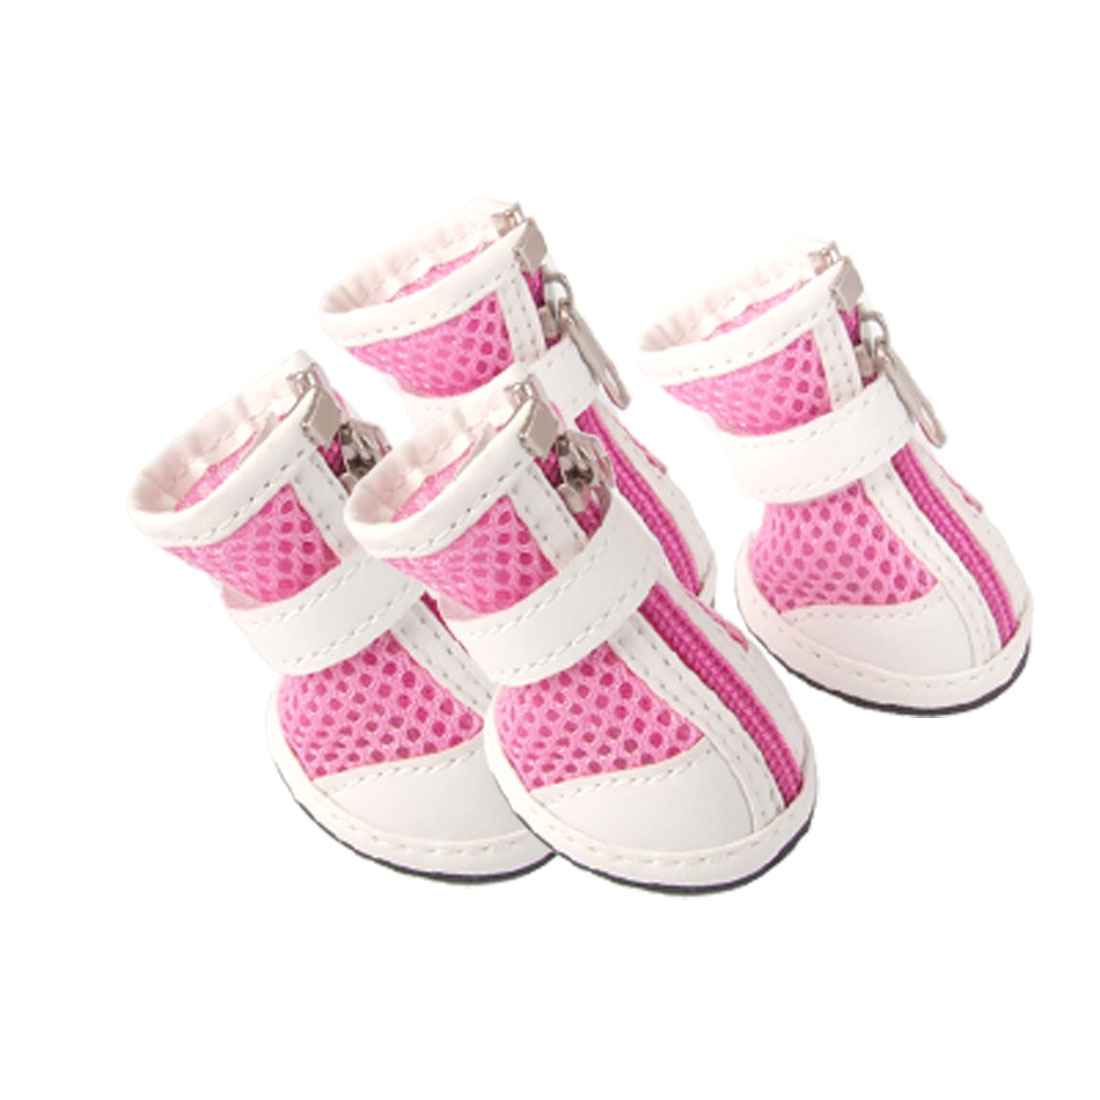 Size 3 Nonslip Rubber Outsole Mesh Boots Dog Shoes Pink White